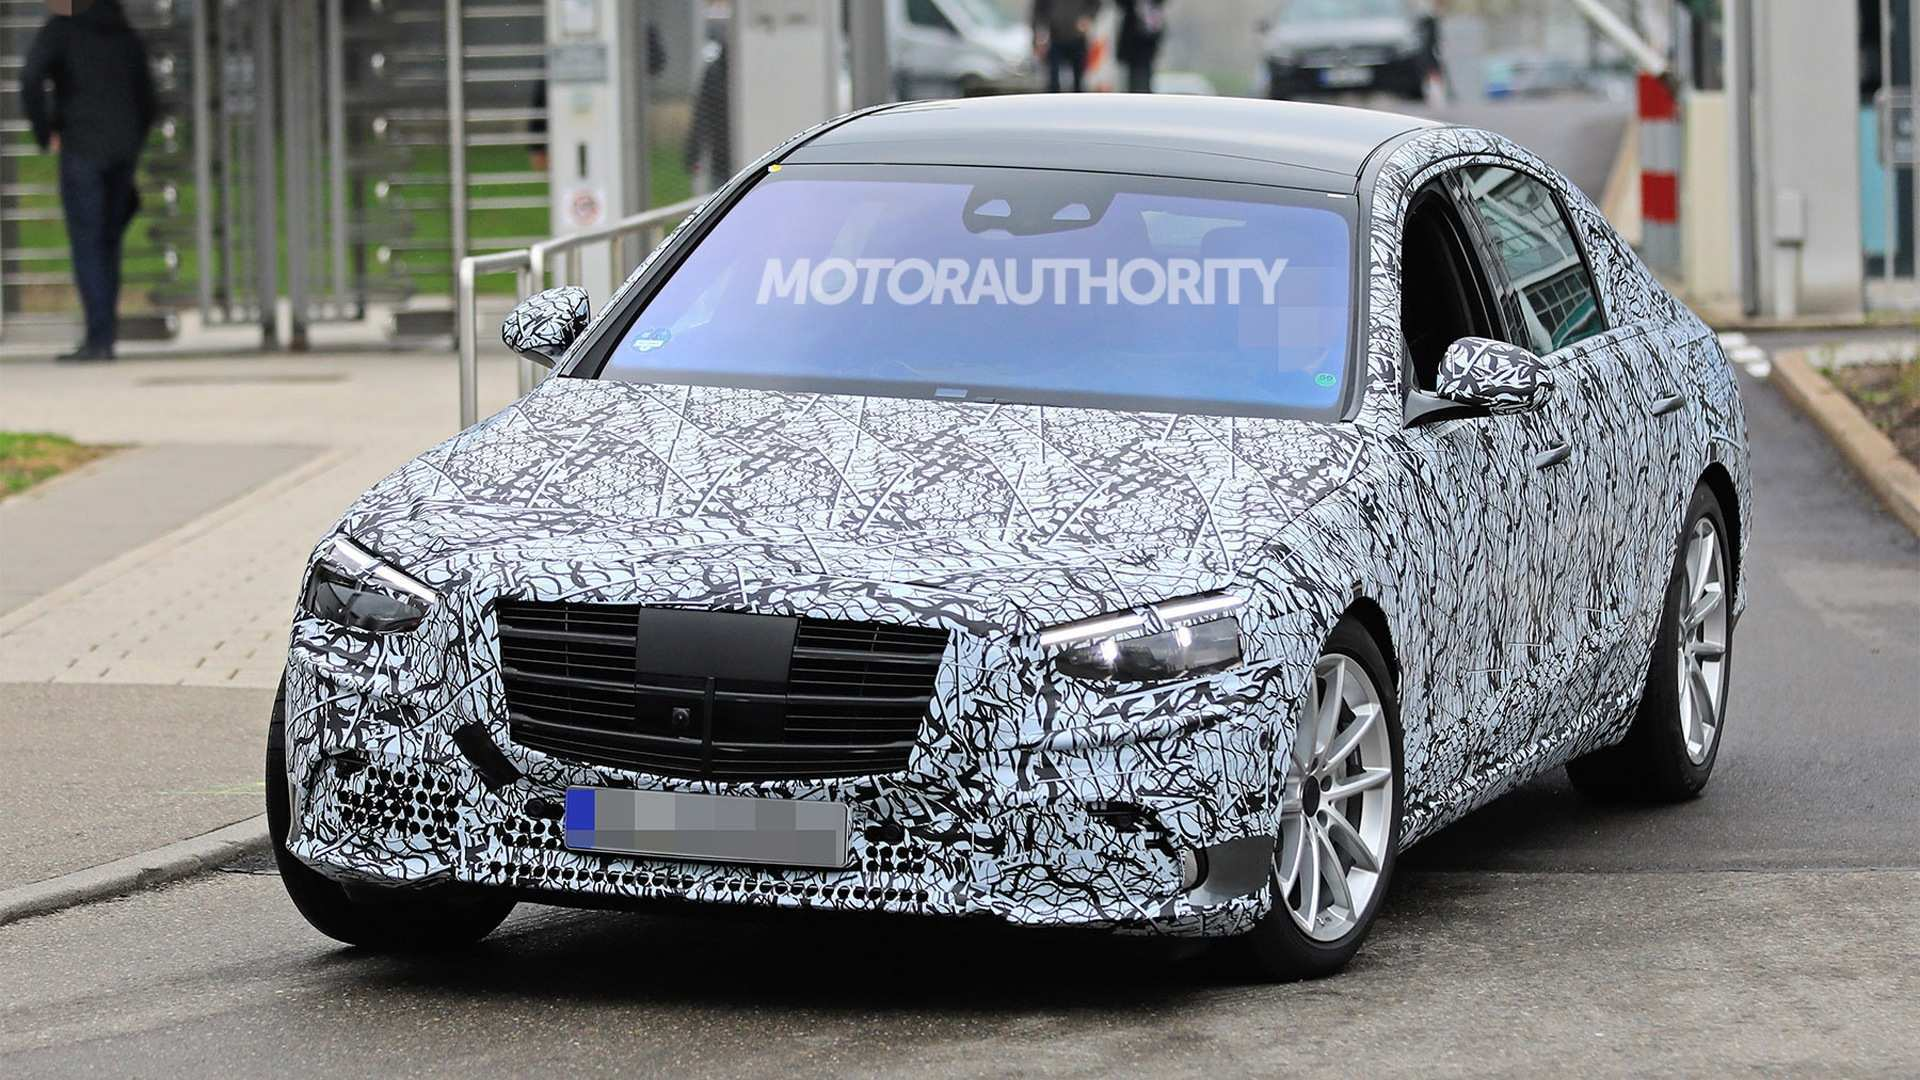 52 All New 2020 Mercedes Cls Class Release Date And Concept